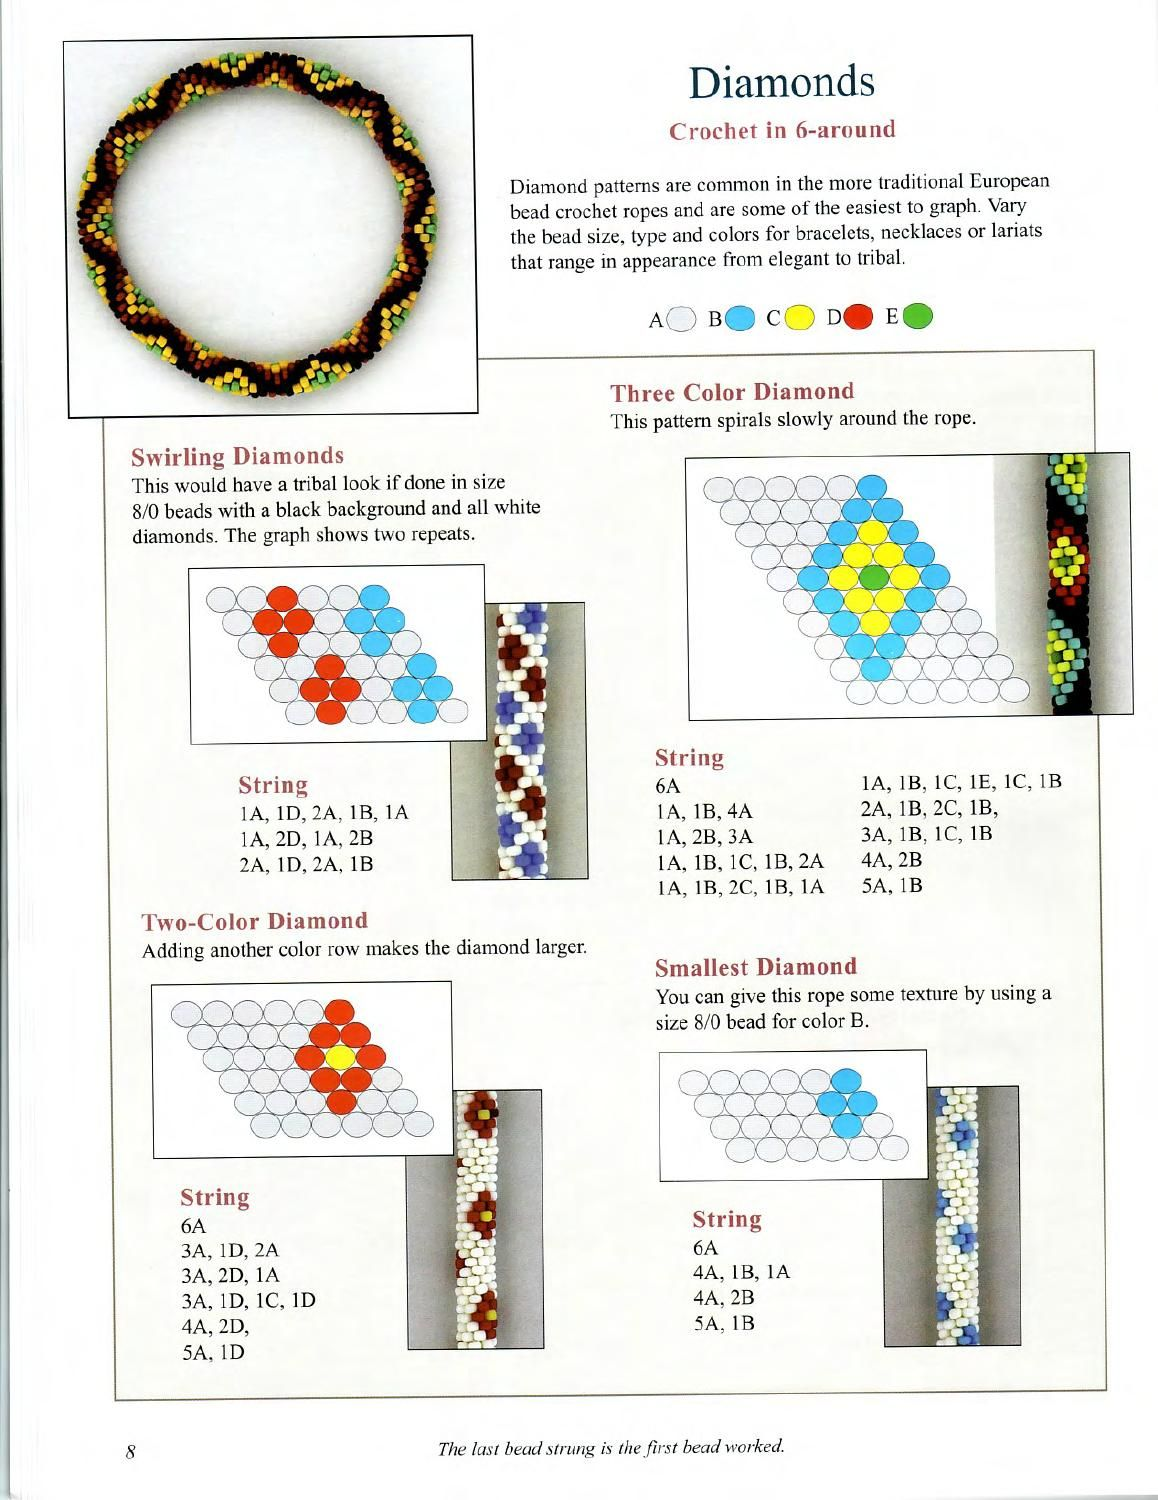 Patterns and Graphing for Bead Crochet Ropes | Häkelketten ...